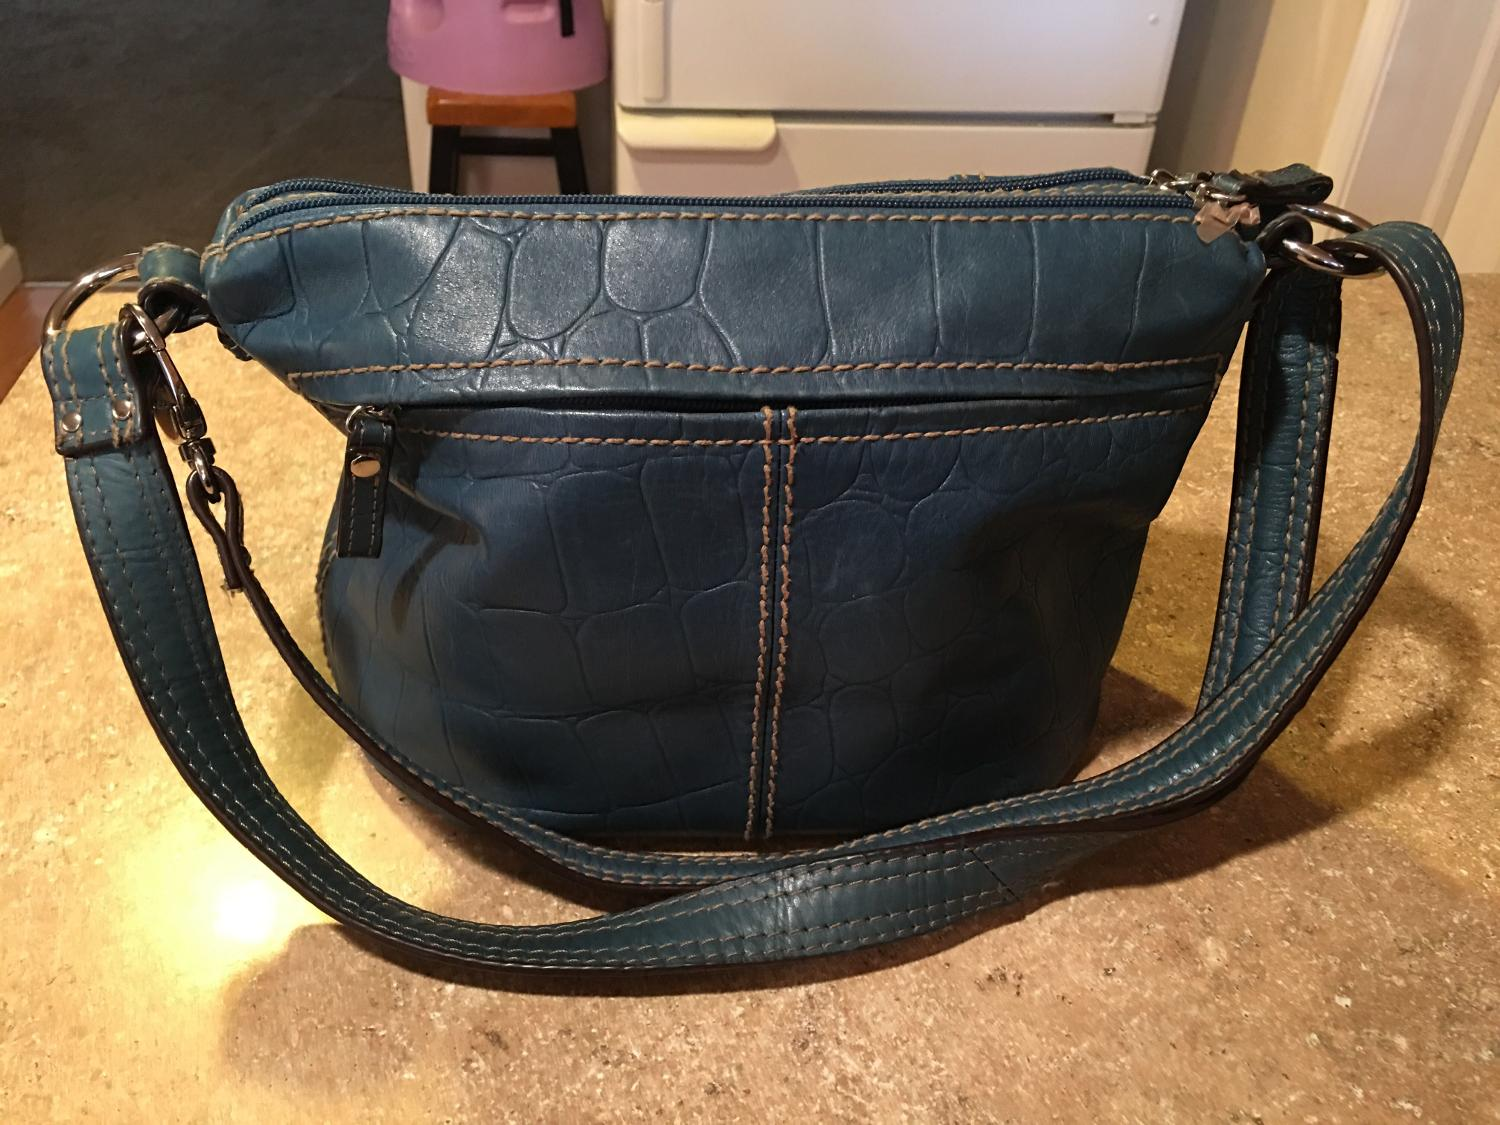 Best tignanello purse med size teal color asking 5 for for Klamath falls jewelry stores